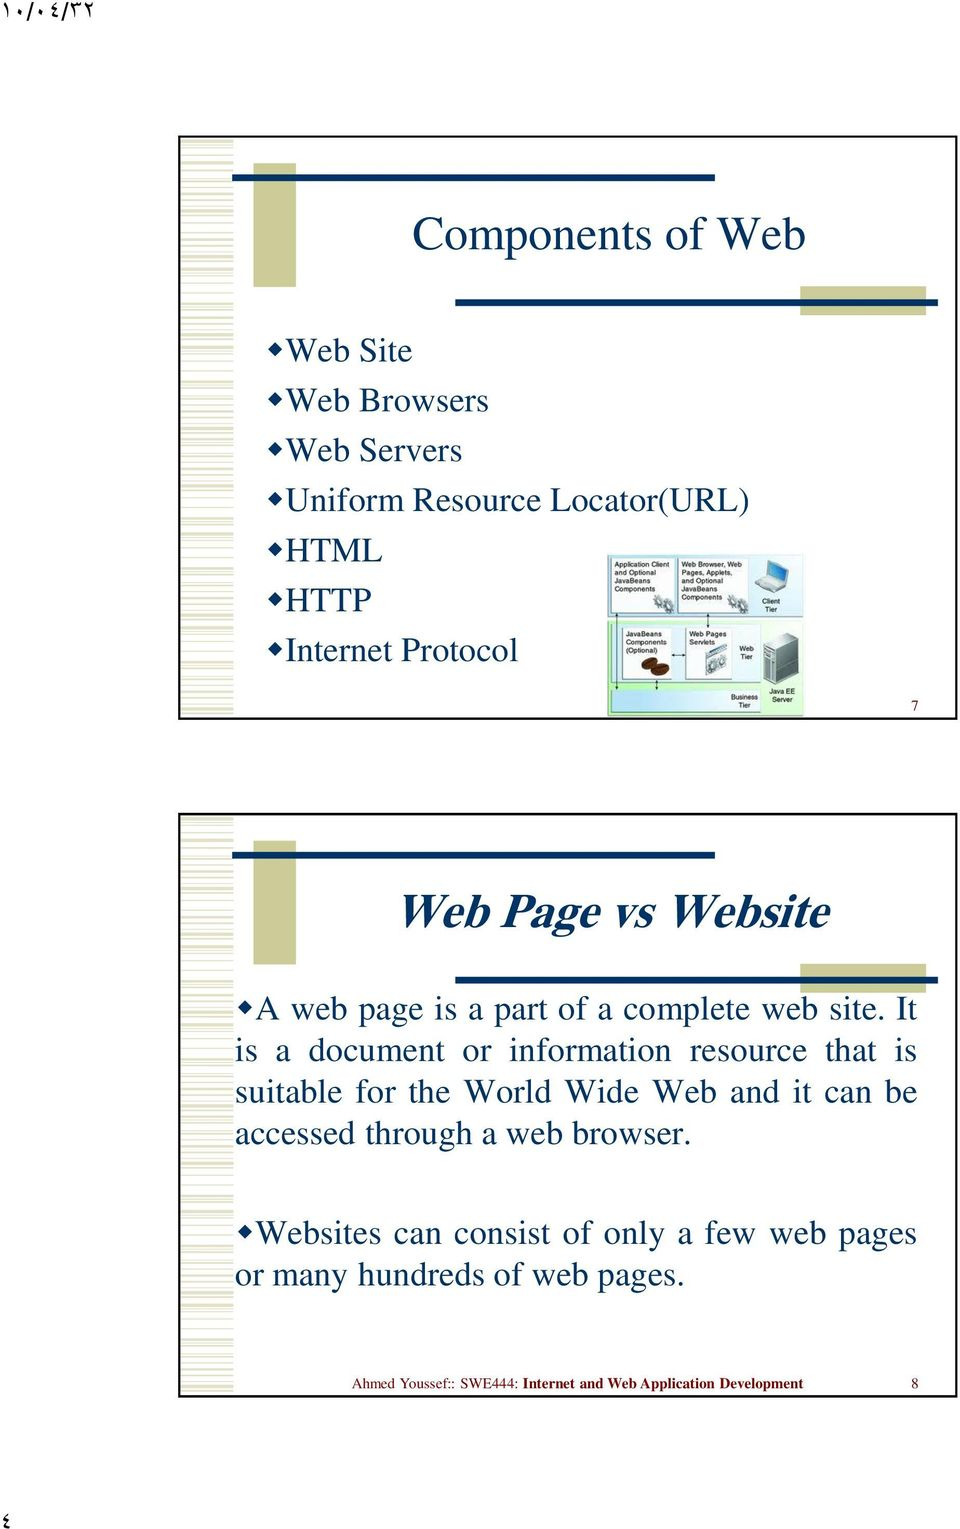 It is a document or information resource that is suitable for the World Wide Web and it can be accessed through